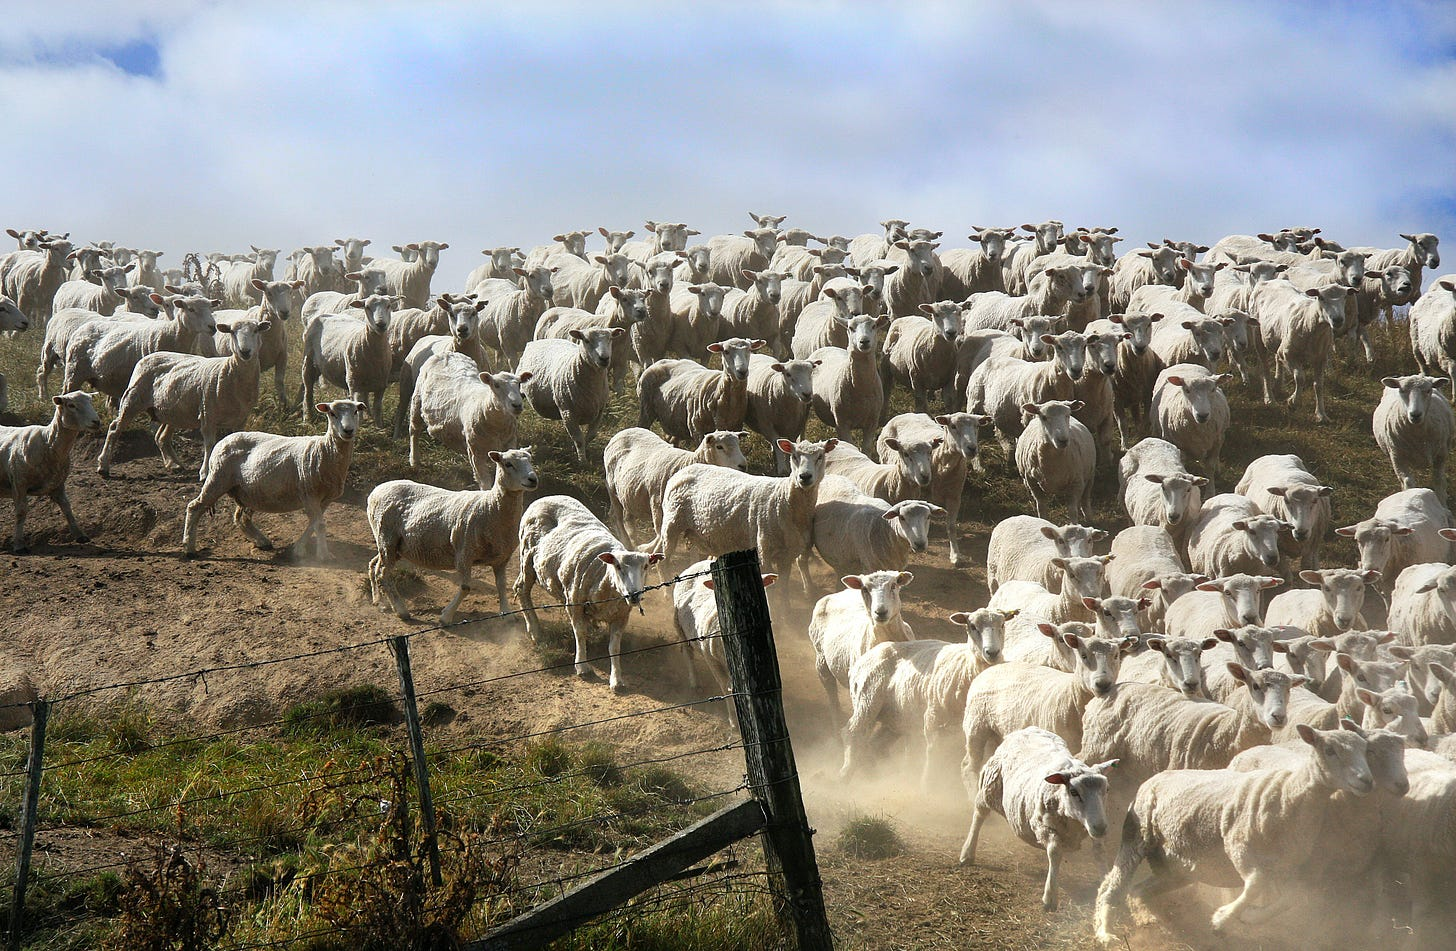 A flock of sheep running througha gap in a wire fence